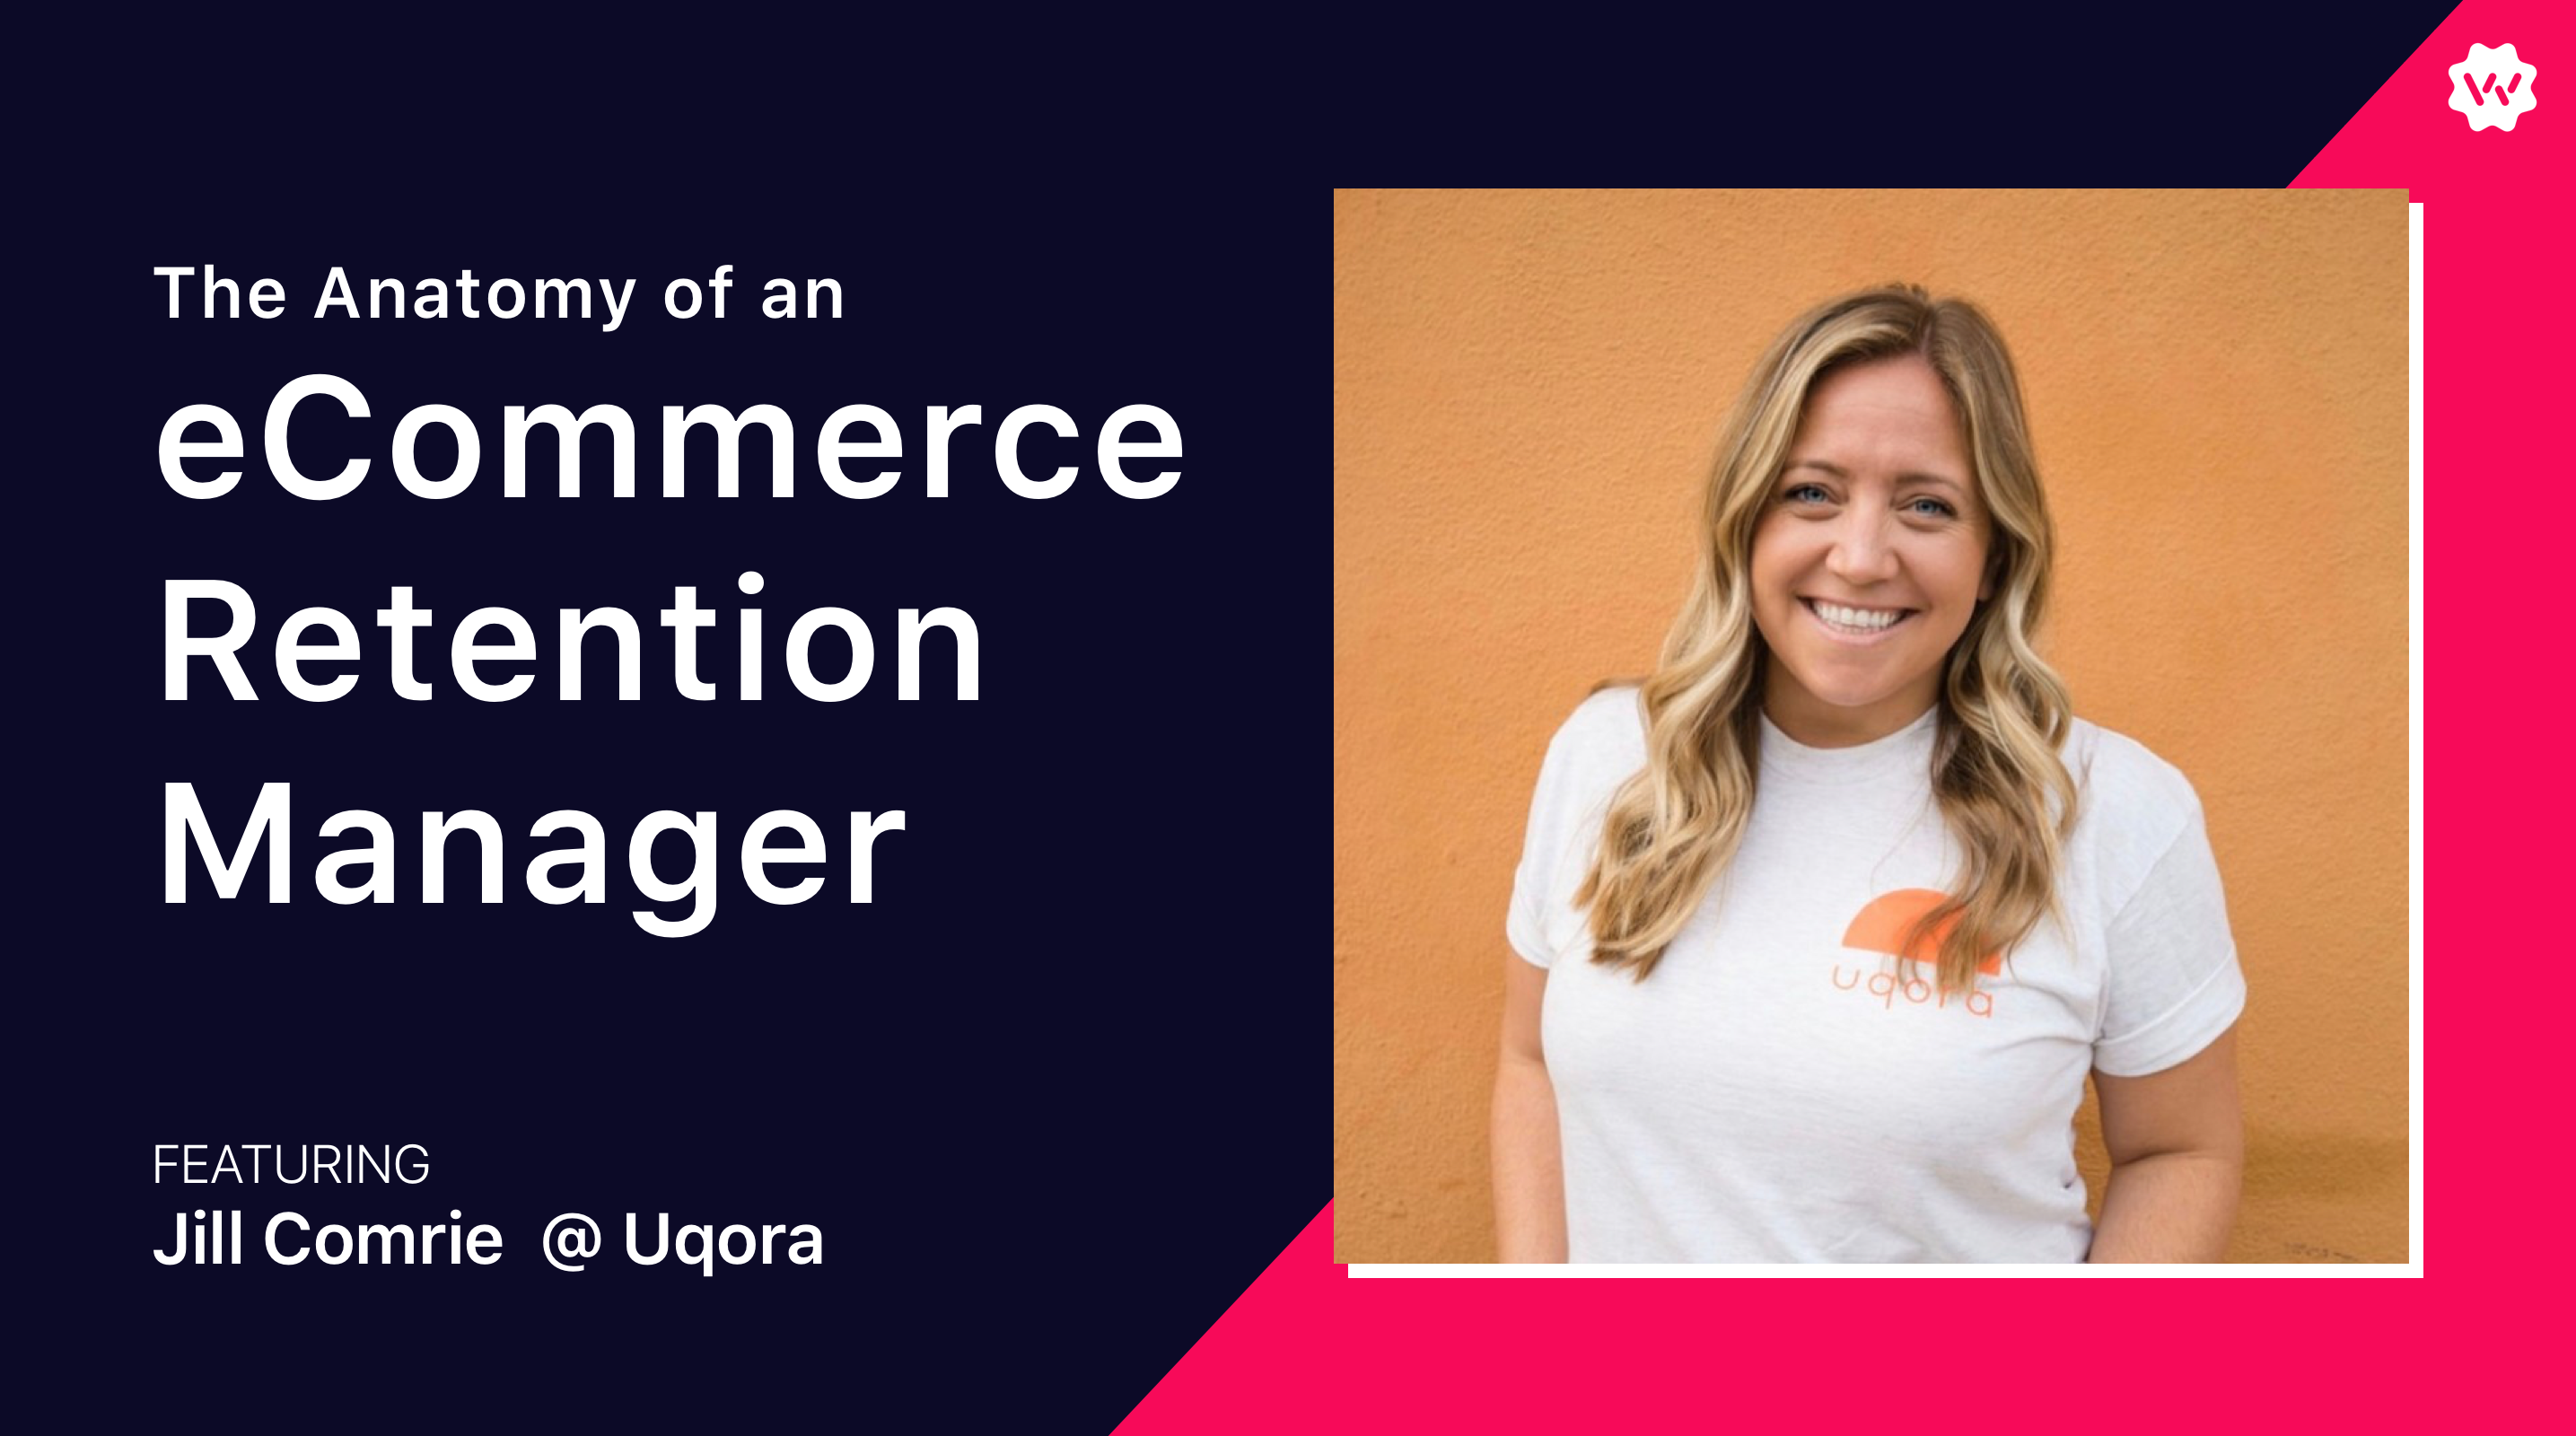 The Anatomy of an eCommerce Retention Manager: Jill